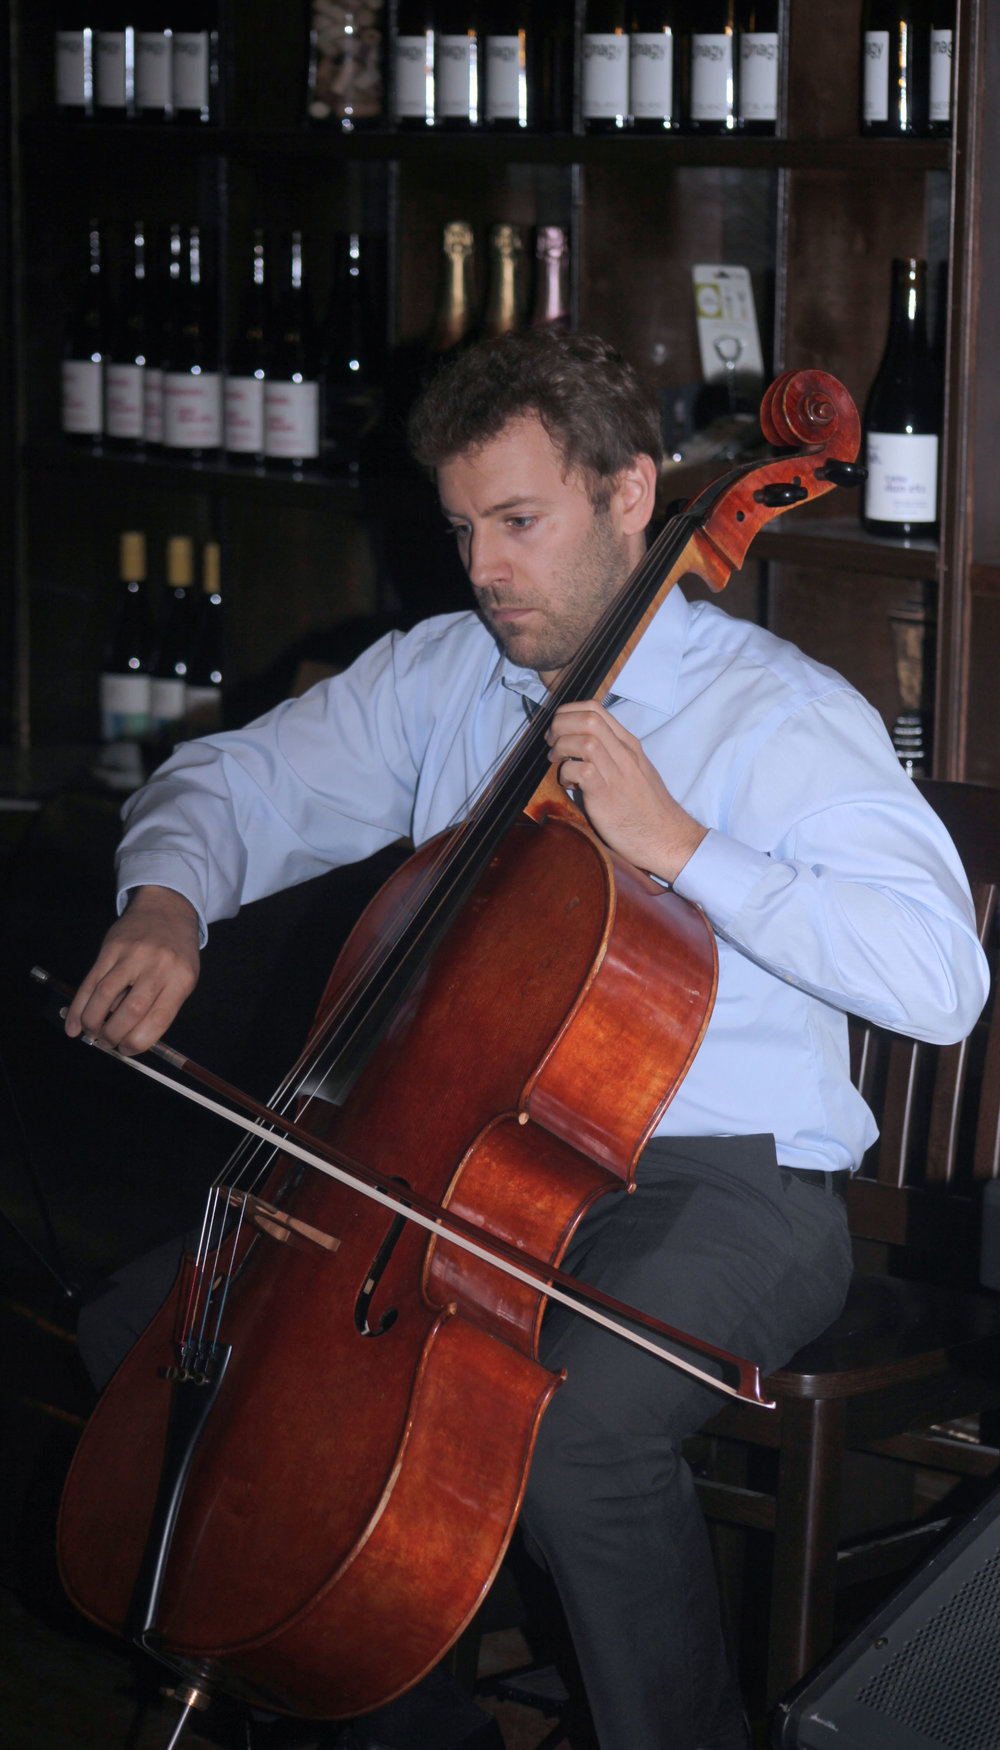 Trevor-Jarvis-Cello-Los-Angeles-V-Wine-Room